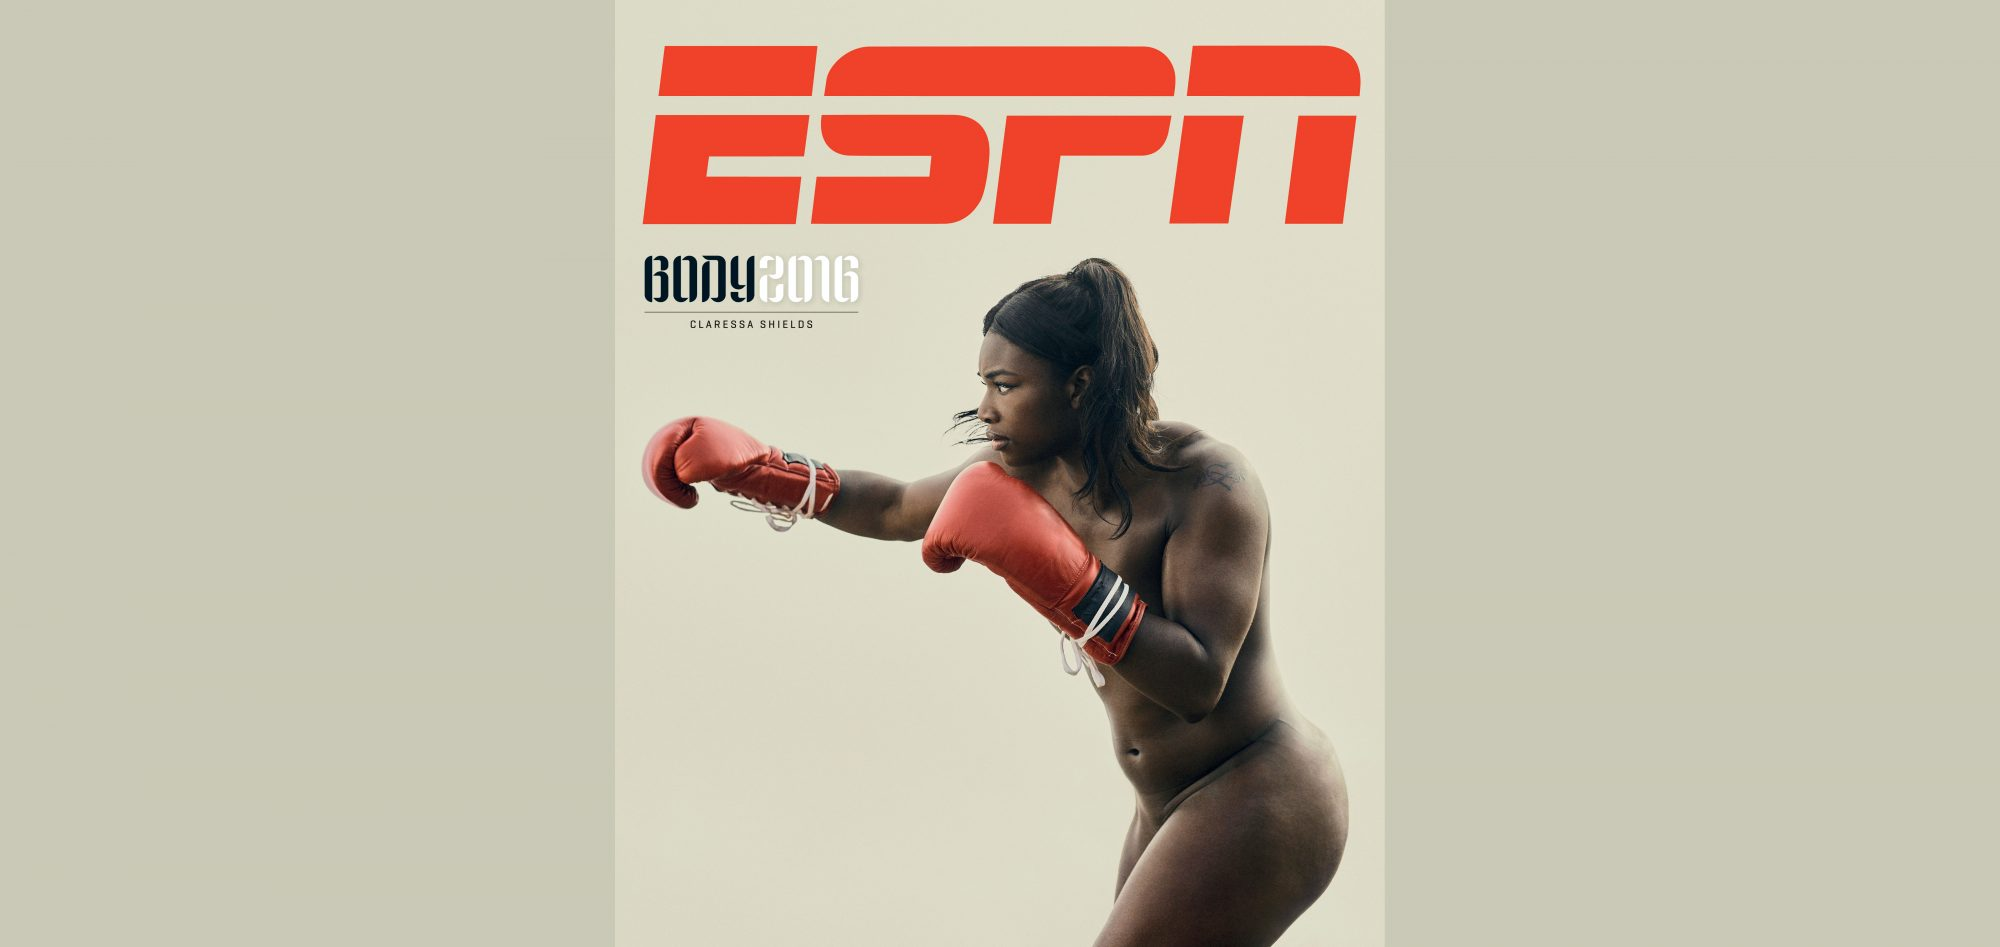 10 Inspiring Quotes from the Female Olympians Who Posed Nude for ESPN's 'Body Issue'